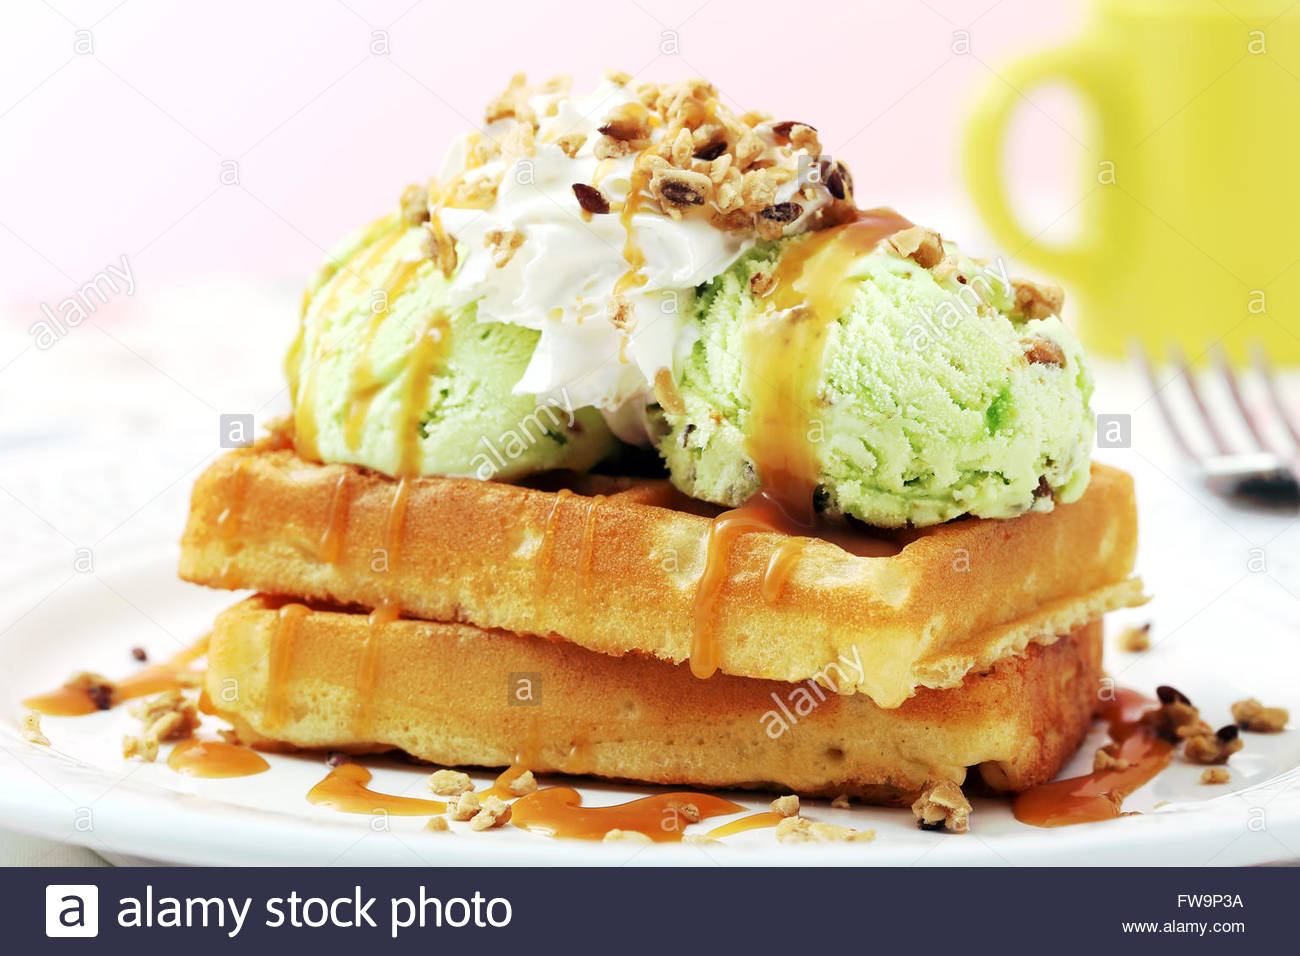 waffles with ice cream on kitchen table background - Stock Image